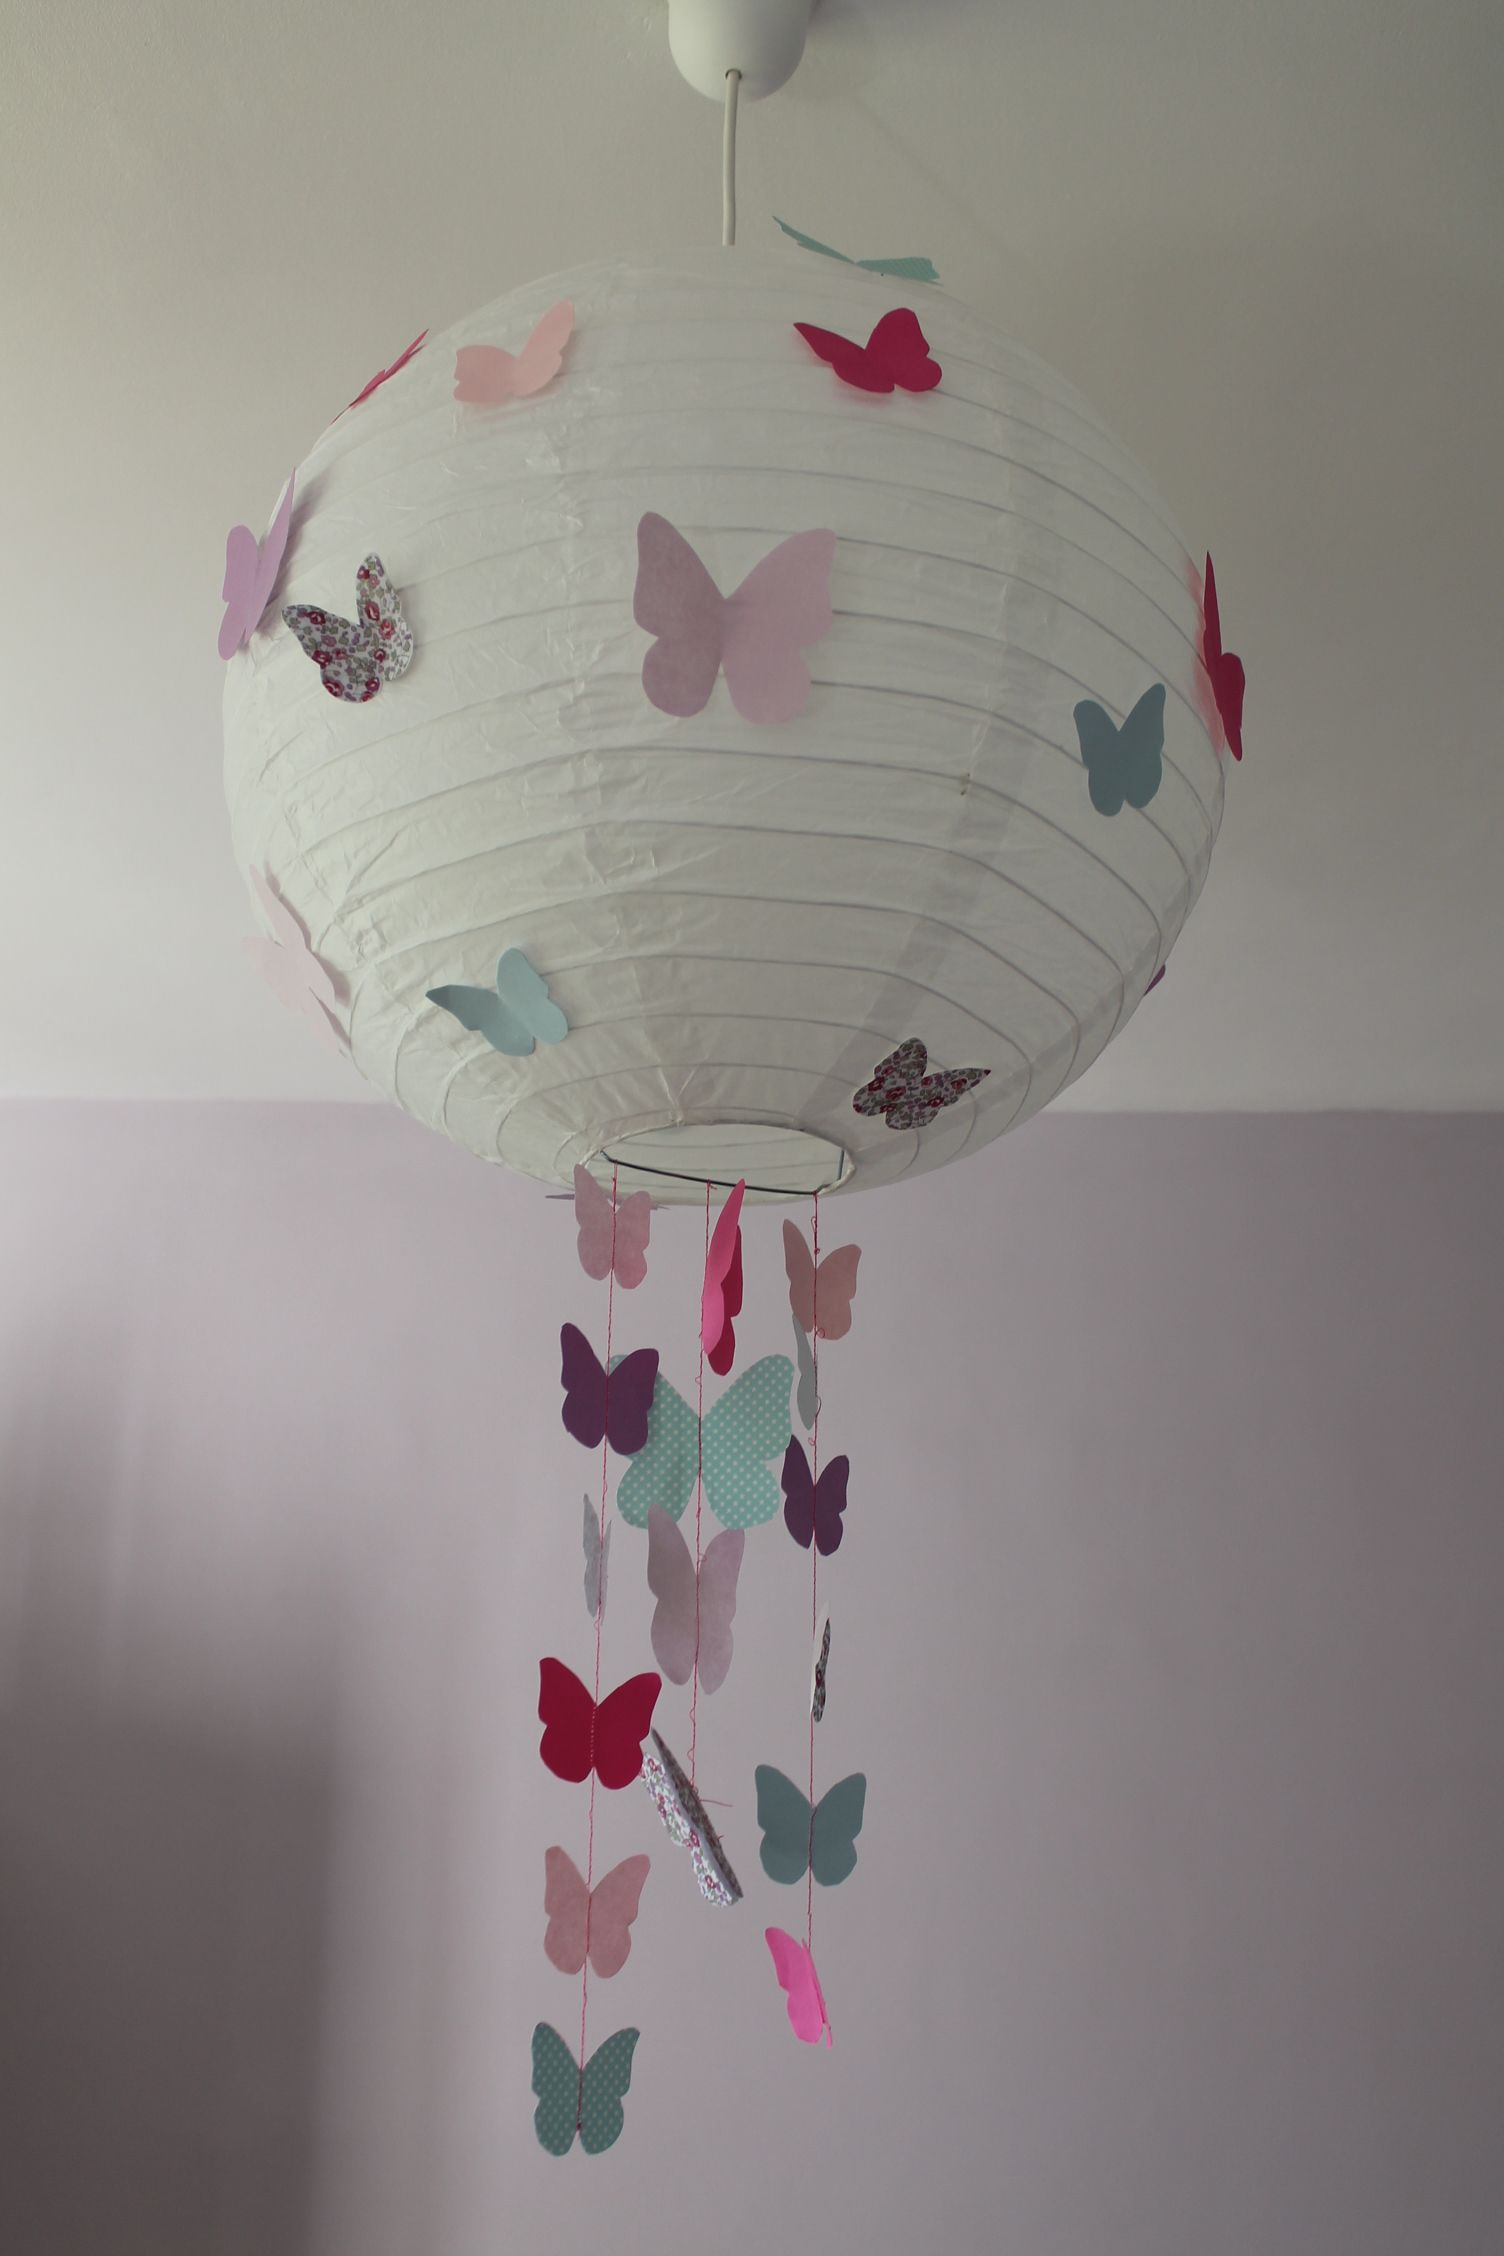 diy boule japonaise papillons light and butterfly lampe papier pinterest boule japonaise. Black Bedroom Furniture Sets. Home Design Ideas